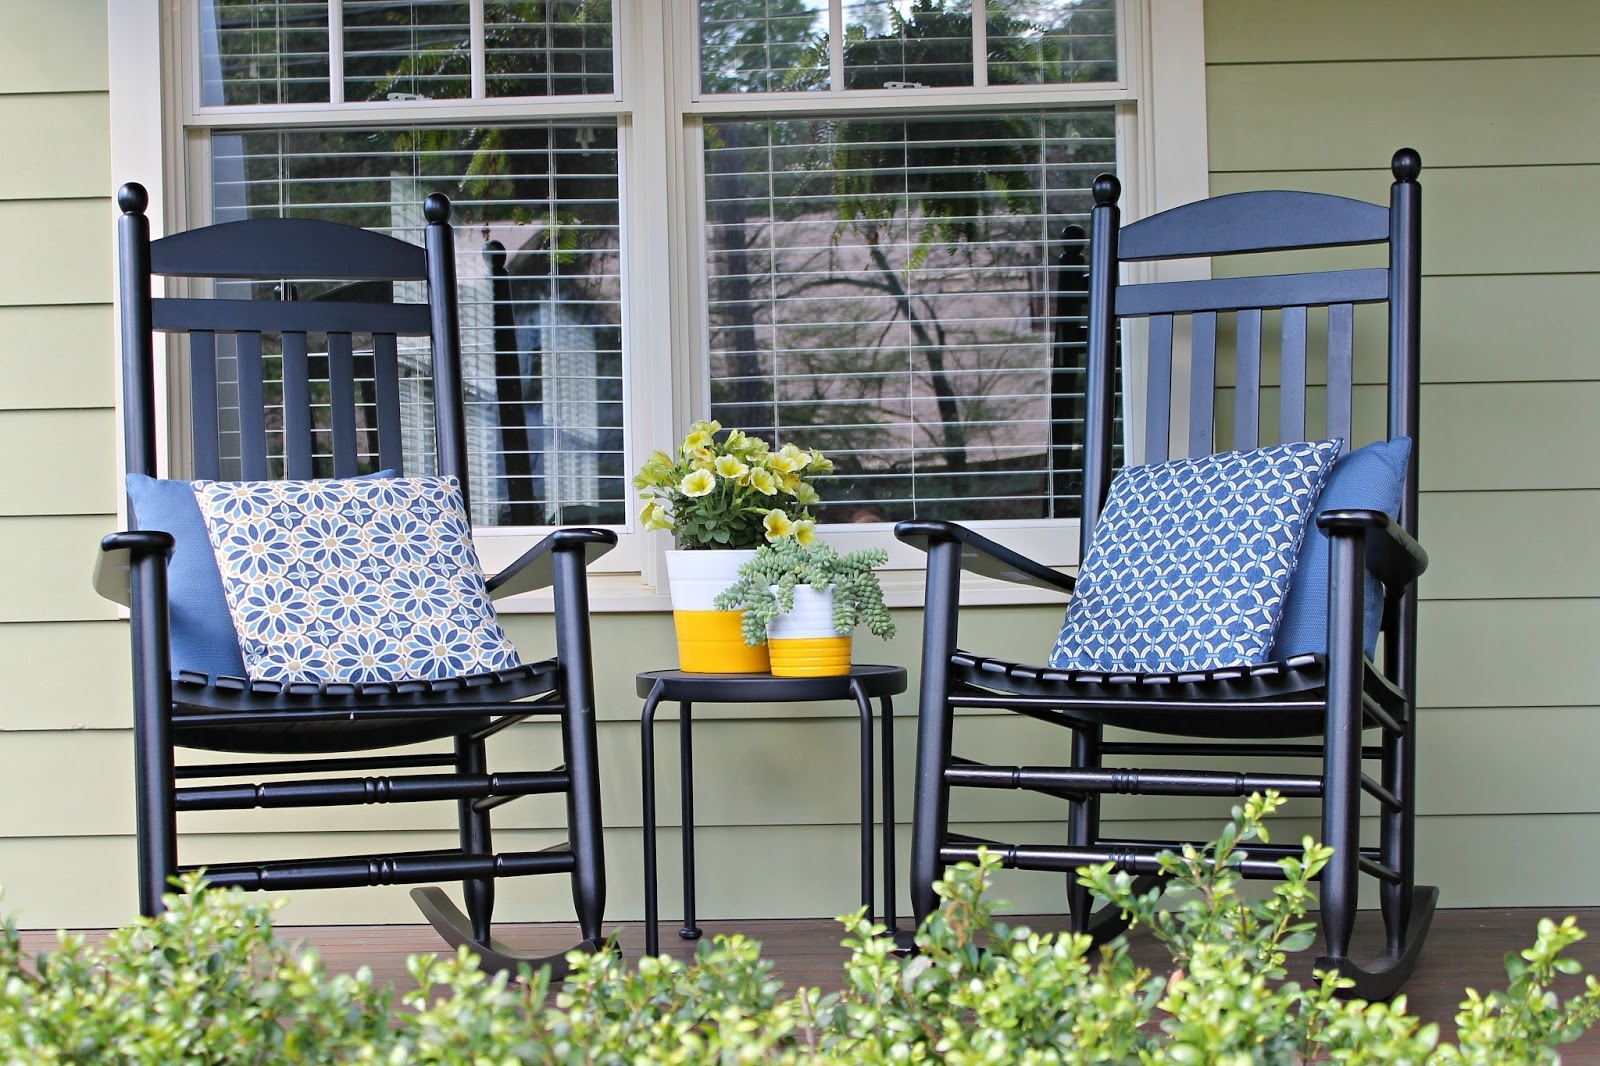 Most Recently Released Small Patio Rocking Chairs Inside The Iconic Style Of Rocking Chair For Chairs Front Porch Design  (View 3 of 15)